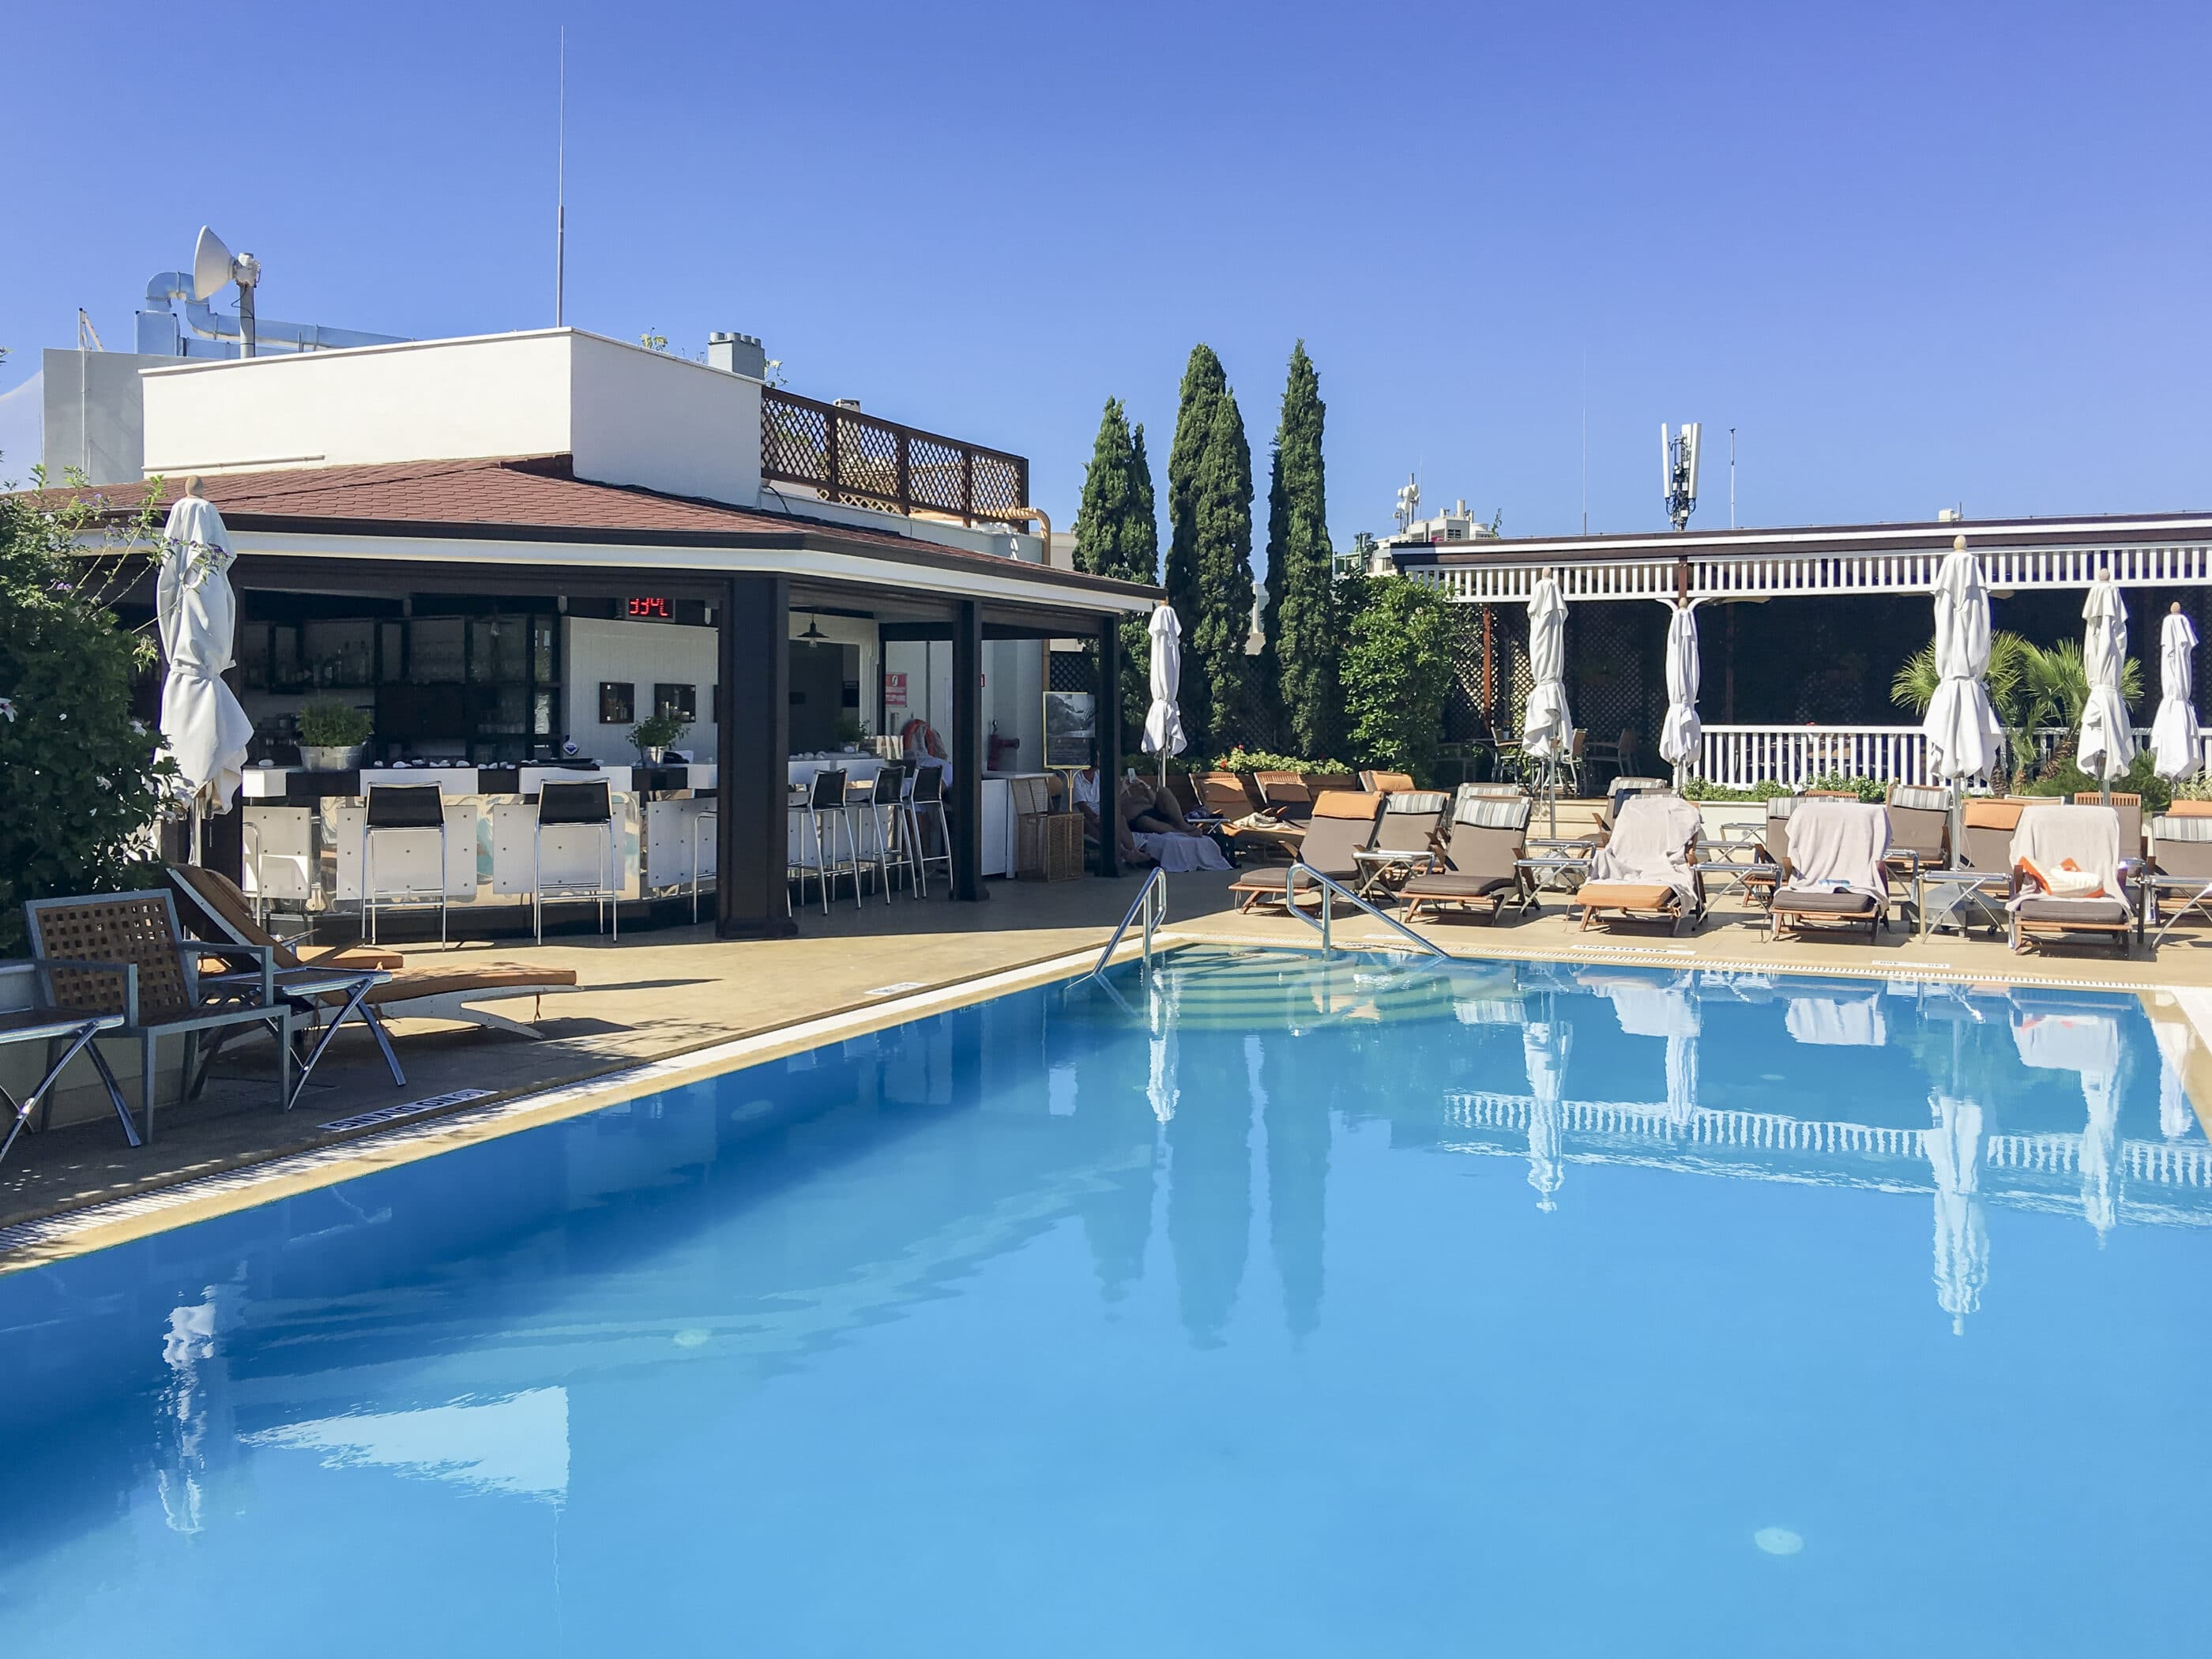 The outdoor pool on a sunny summer day in the morning before guests arrive.